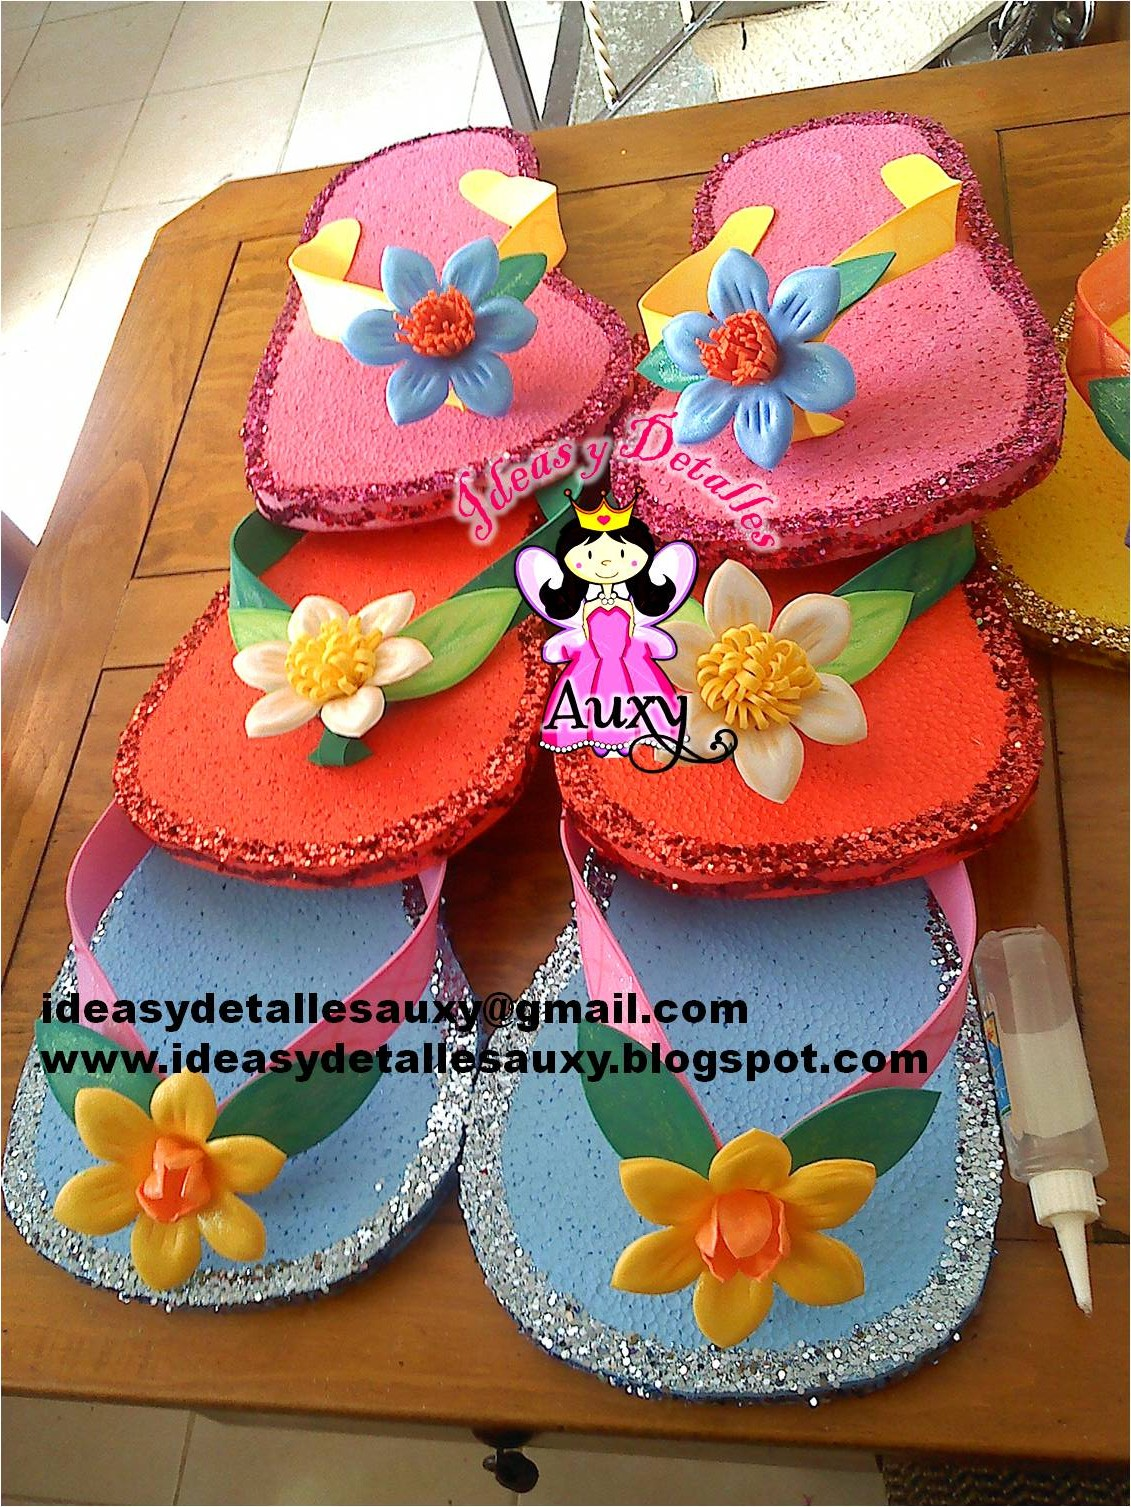 CHANCLAS PARA DECORACION DE FIESTA HAWAIANA